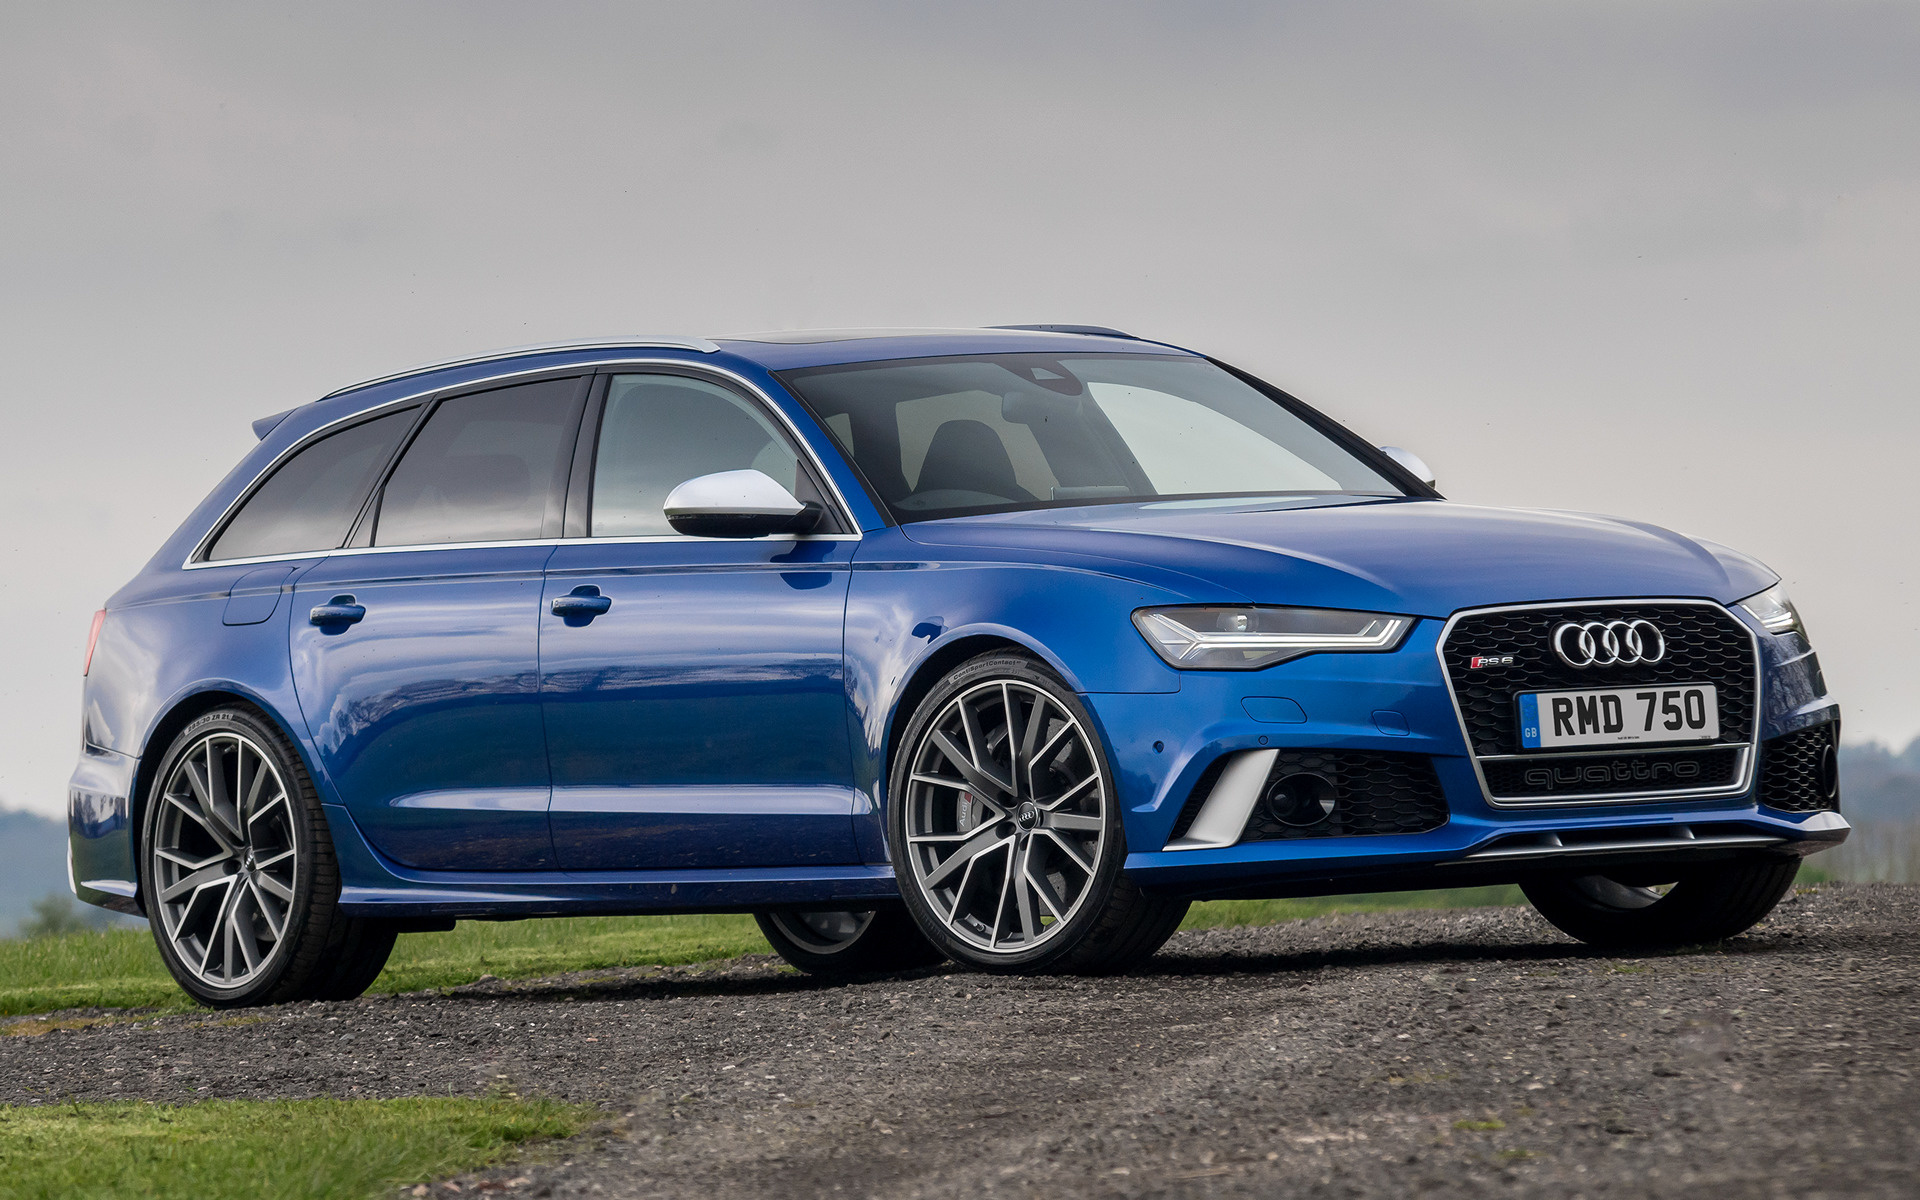 2016 Audi Rs 6 Avant Performance Uk Wallpapers And Hd